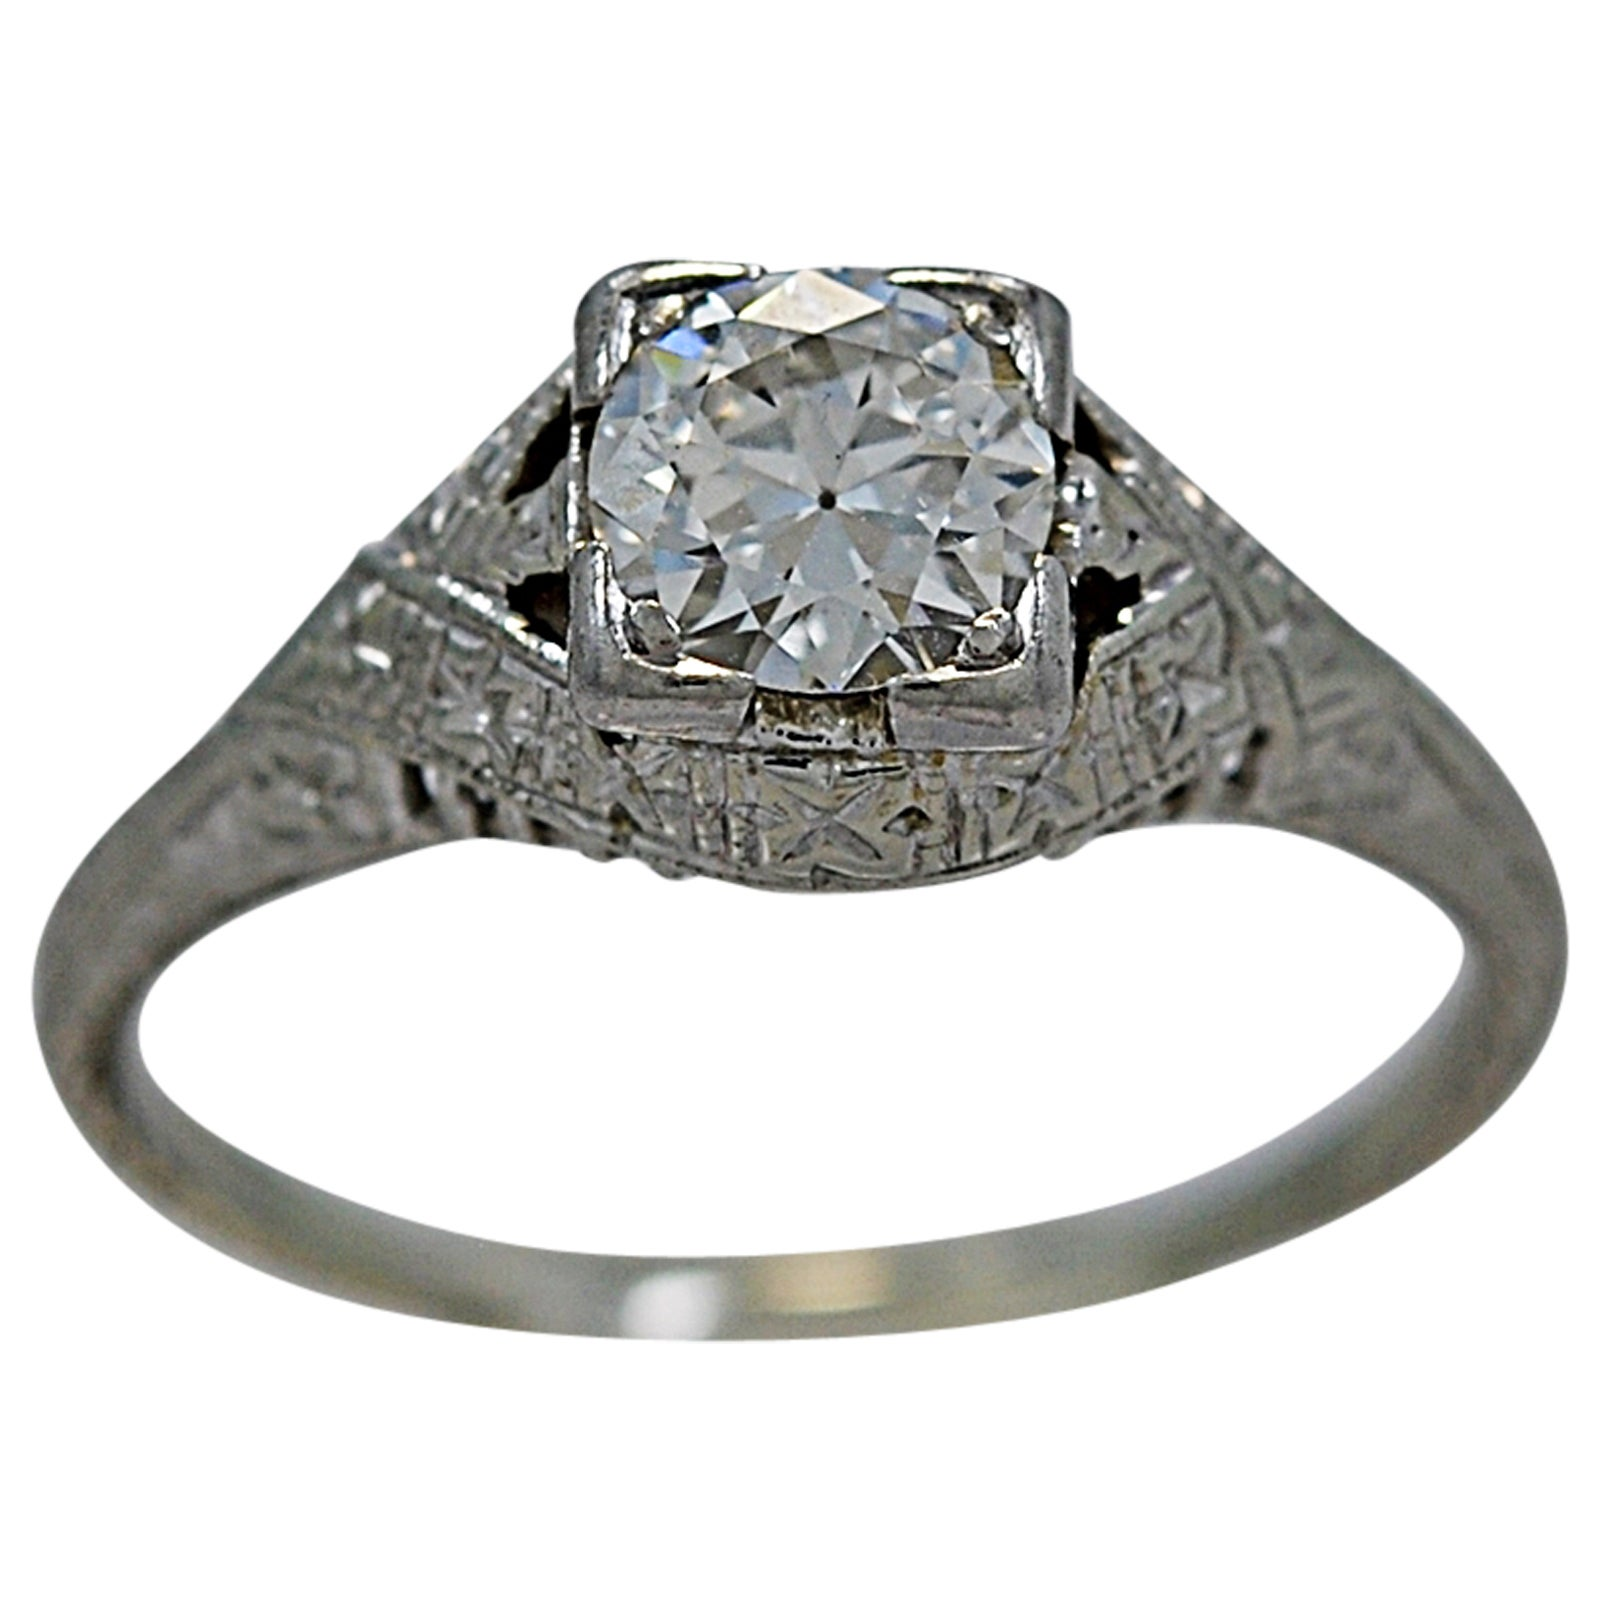 rings deco ring org art platinum j carat sale id jewelry diamond for at stellar engagement fashion